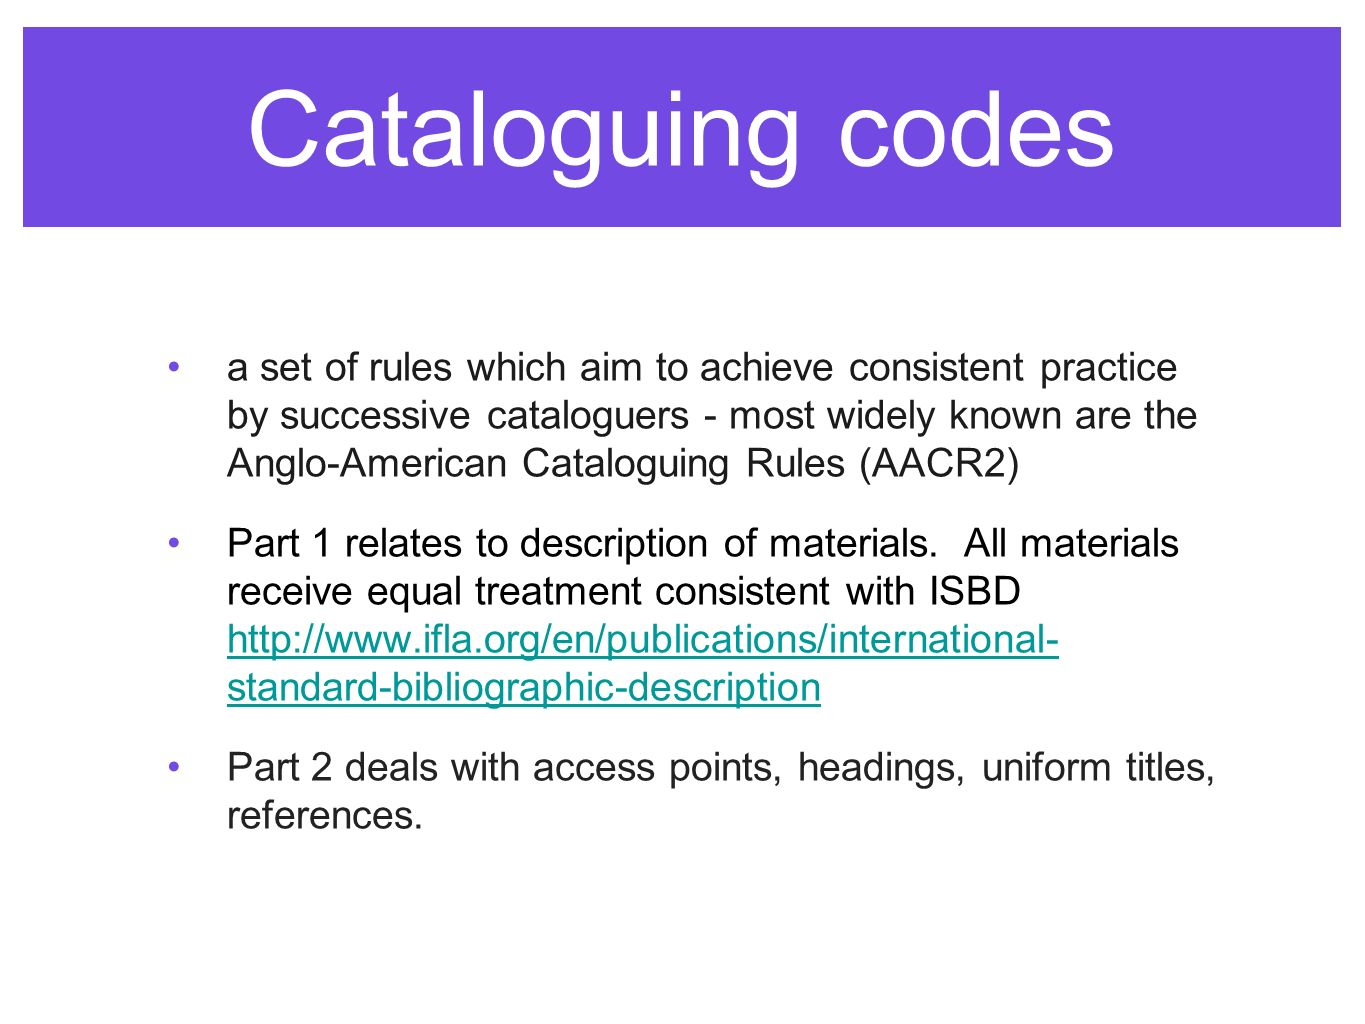 Cataloguing codes a set of rules which aim to achieve consistent practice by successive cataloguers - most widely known are the Anglo-American Cataloguing Rules (AACR2) Part 1 relates to description of materials.